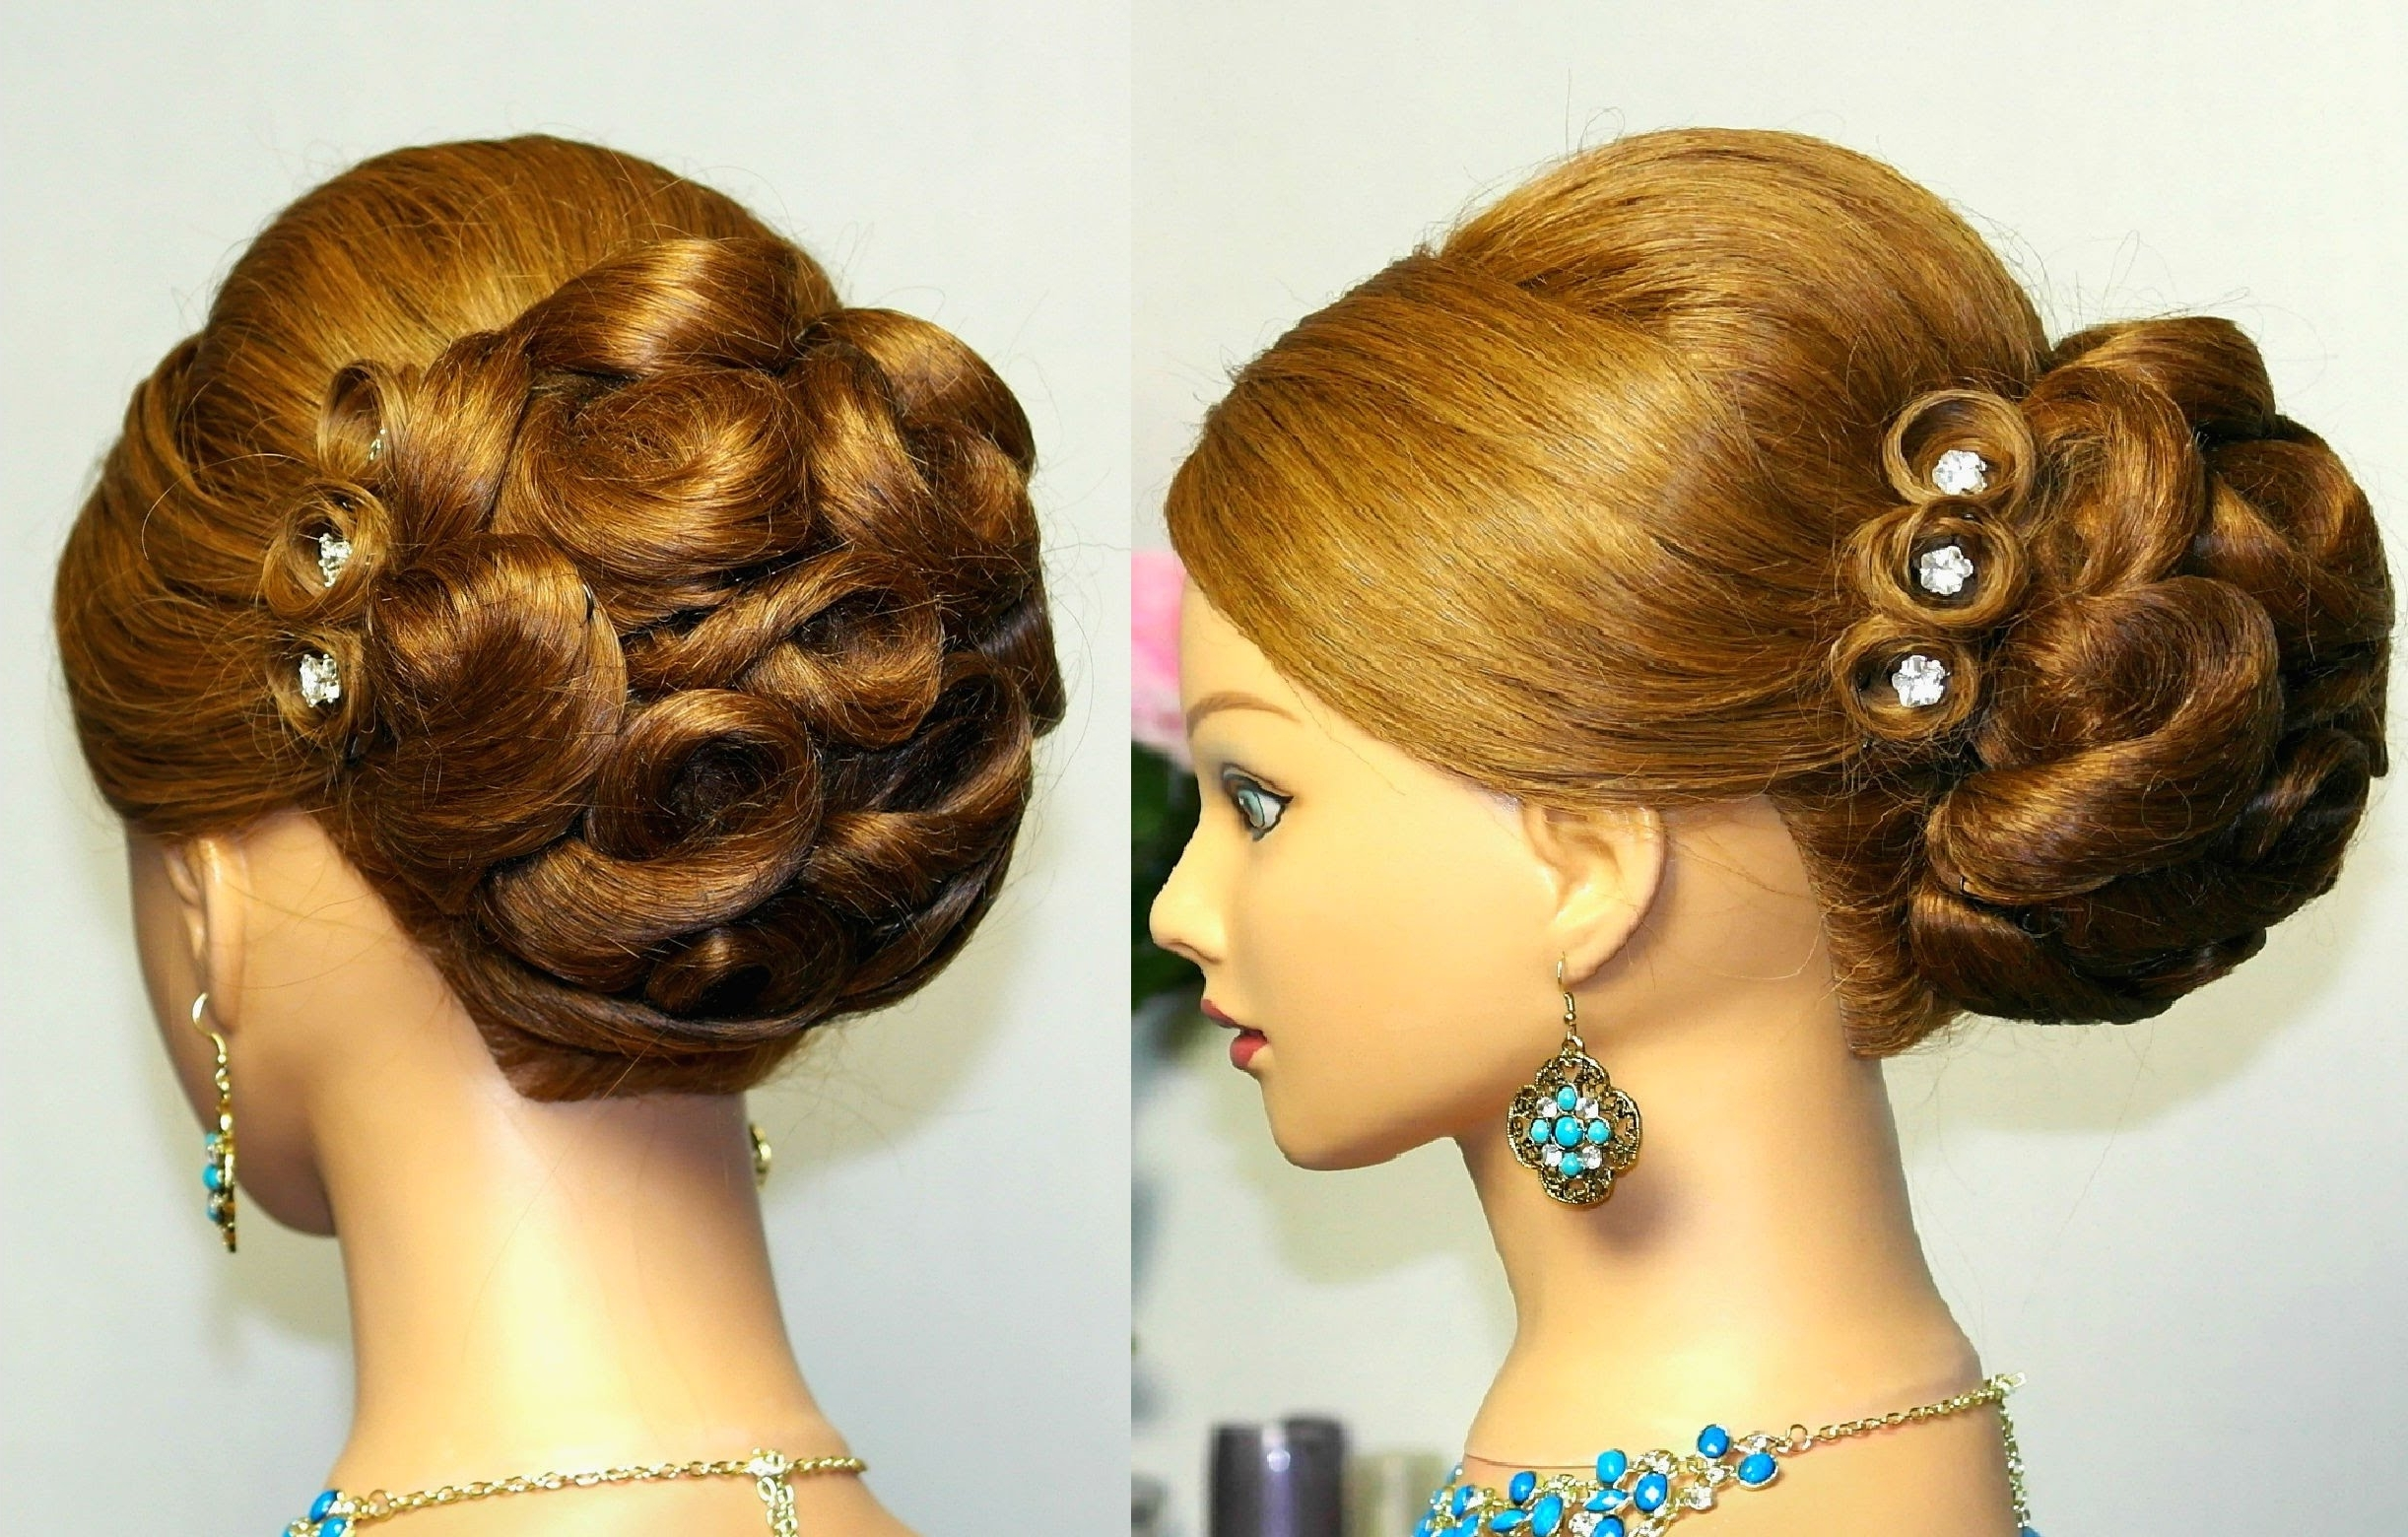 Prom Hairstyle For Long Hair (View 12 of 15)